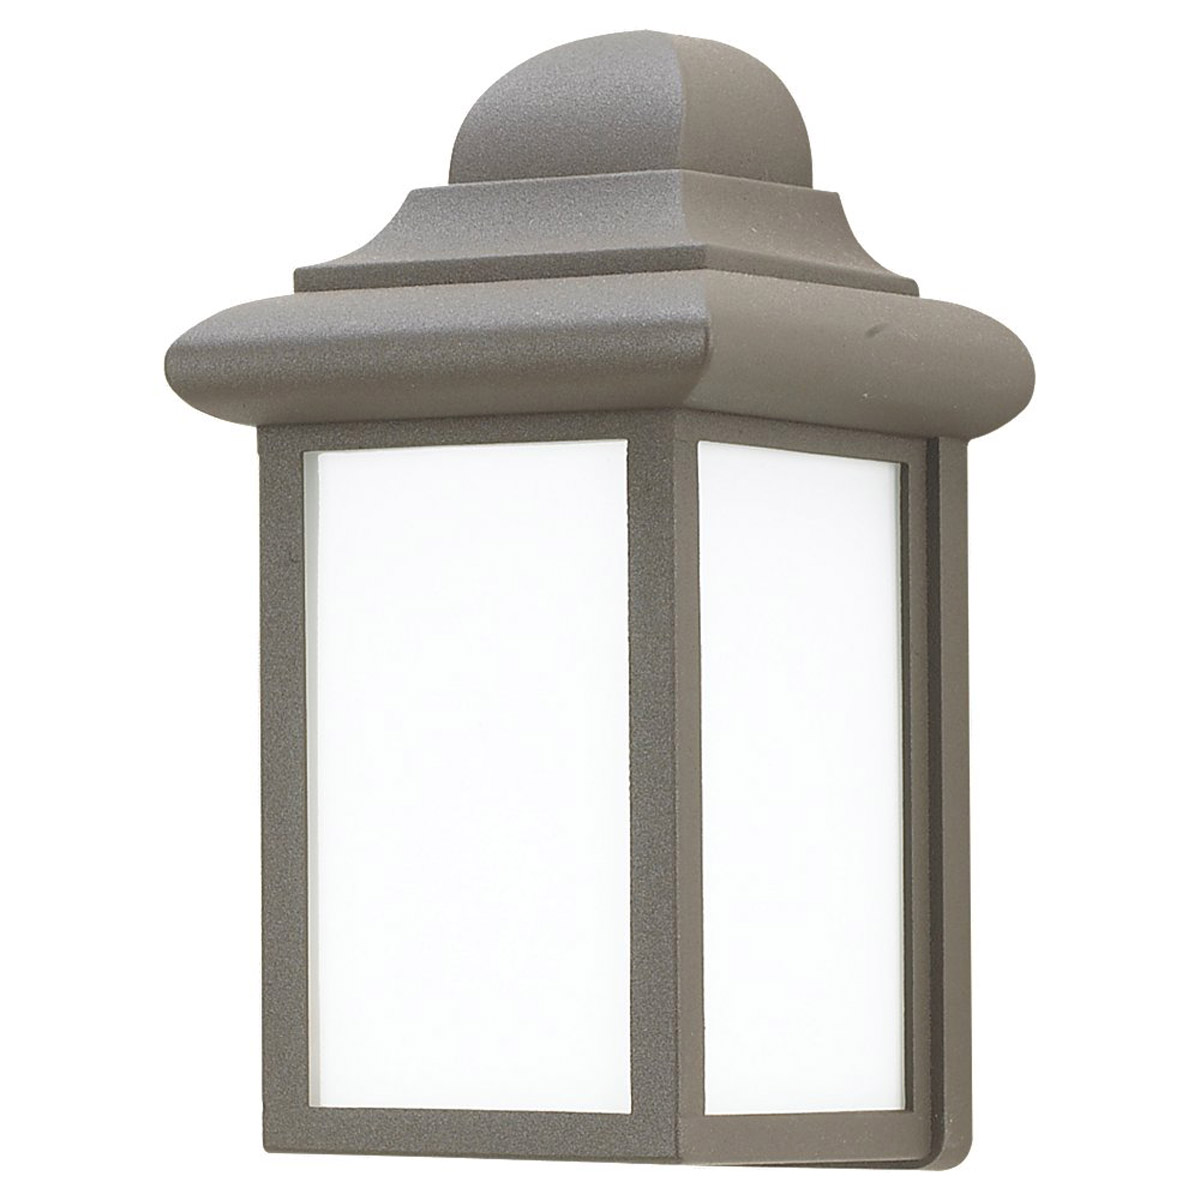 Sea Gull 8988BLE-10 Mullberry Hill 1 Light 9 inch Bronze Outdoor Wall Lantern in No Photocell, Energy Efficient photo